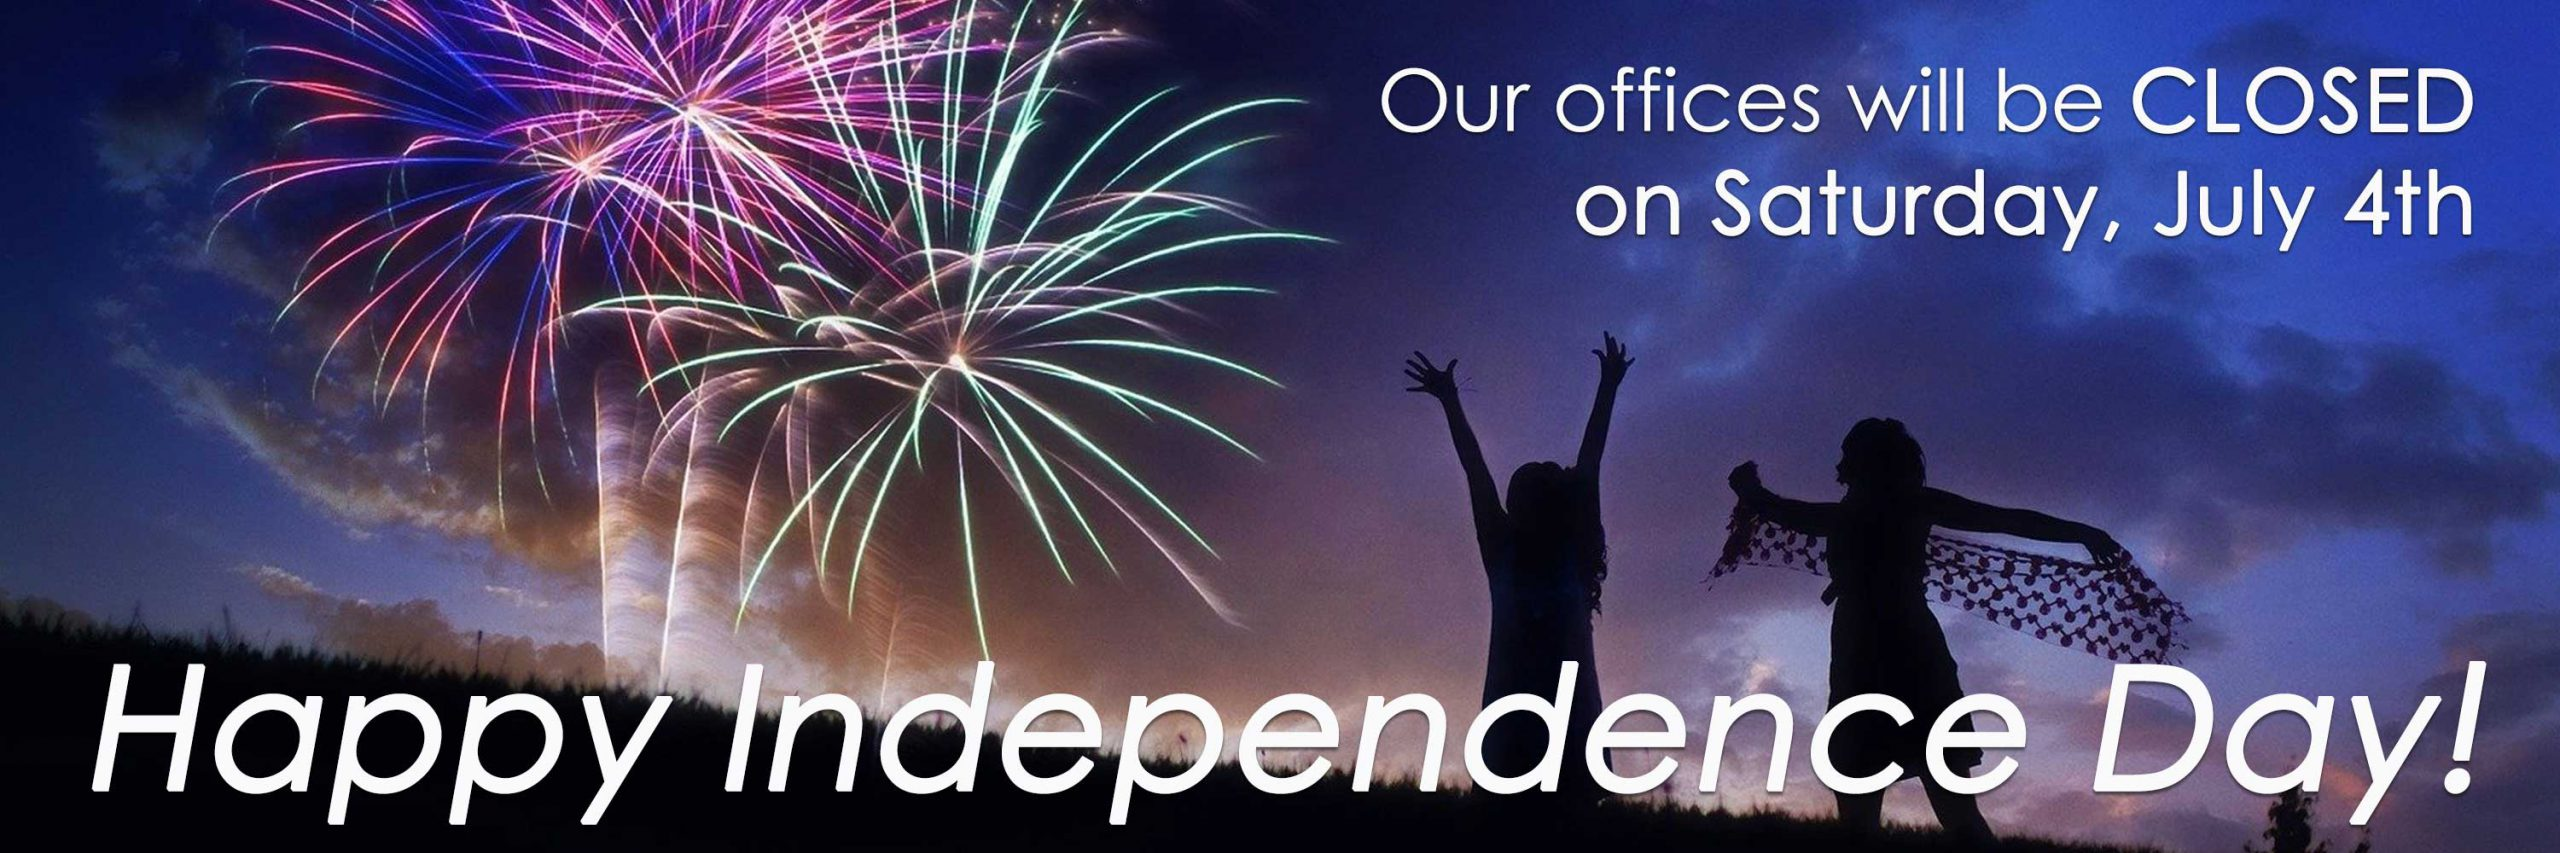 Our offices will be closed on Saturday July Fourth